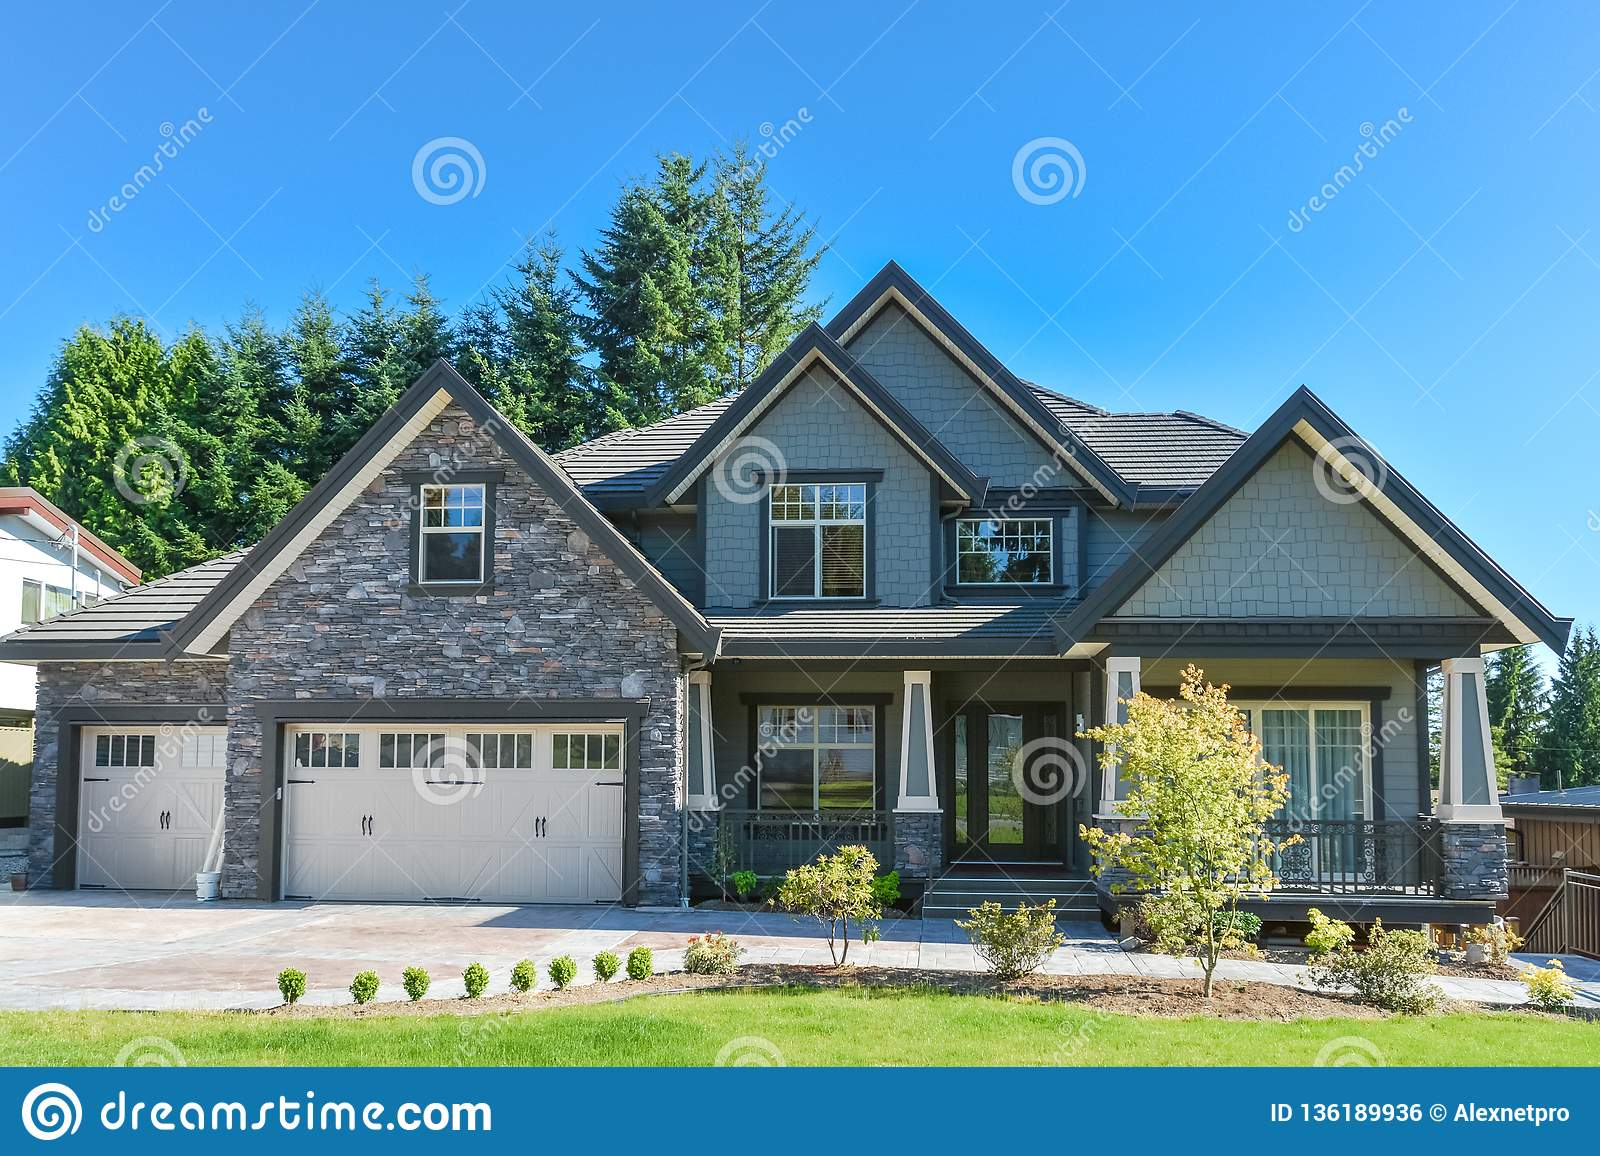 Brand New Luxury Family House With Concrete Driveway And ...